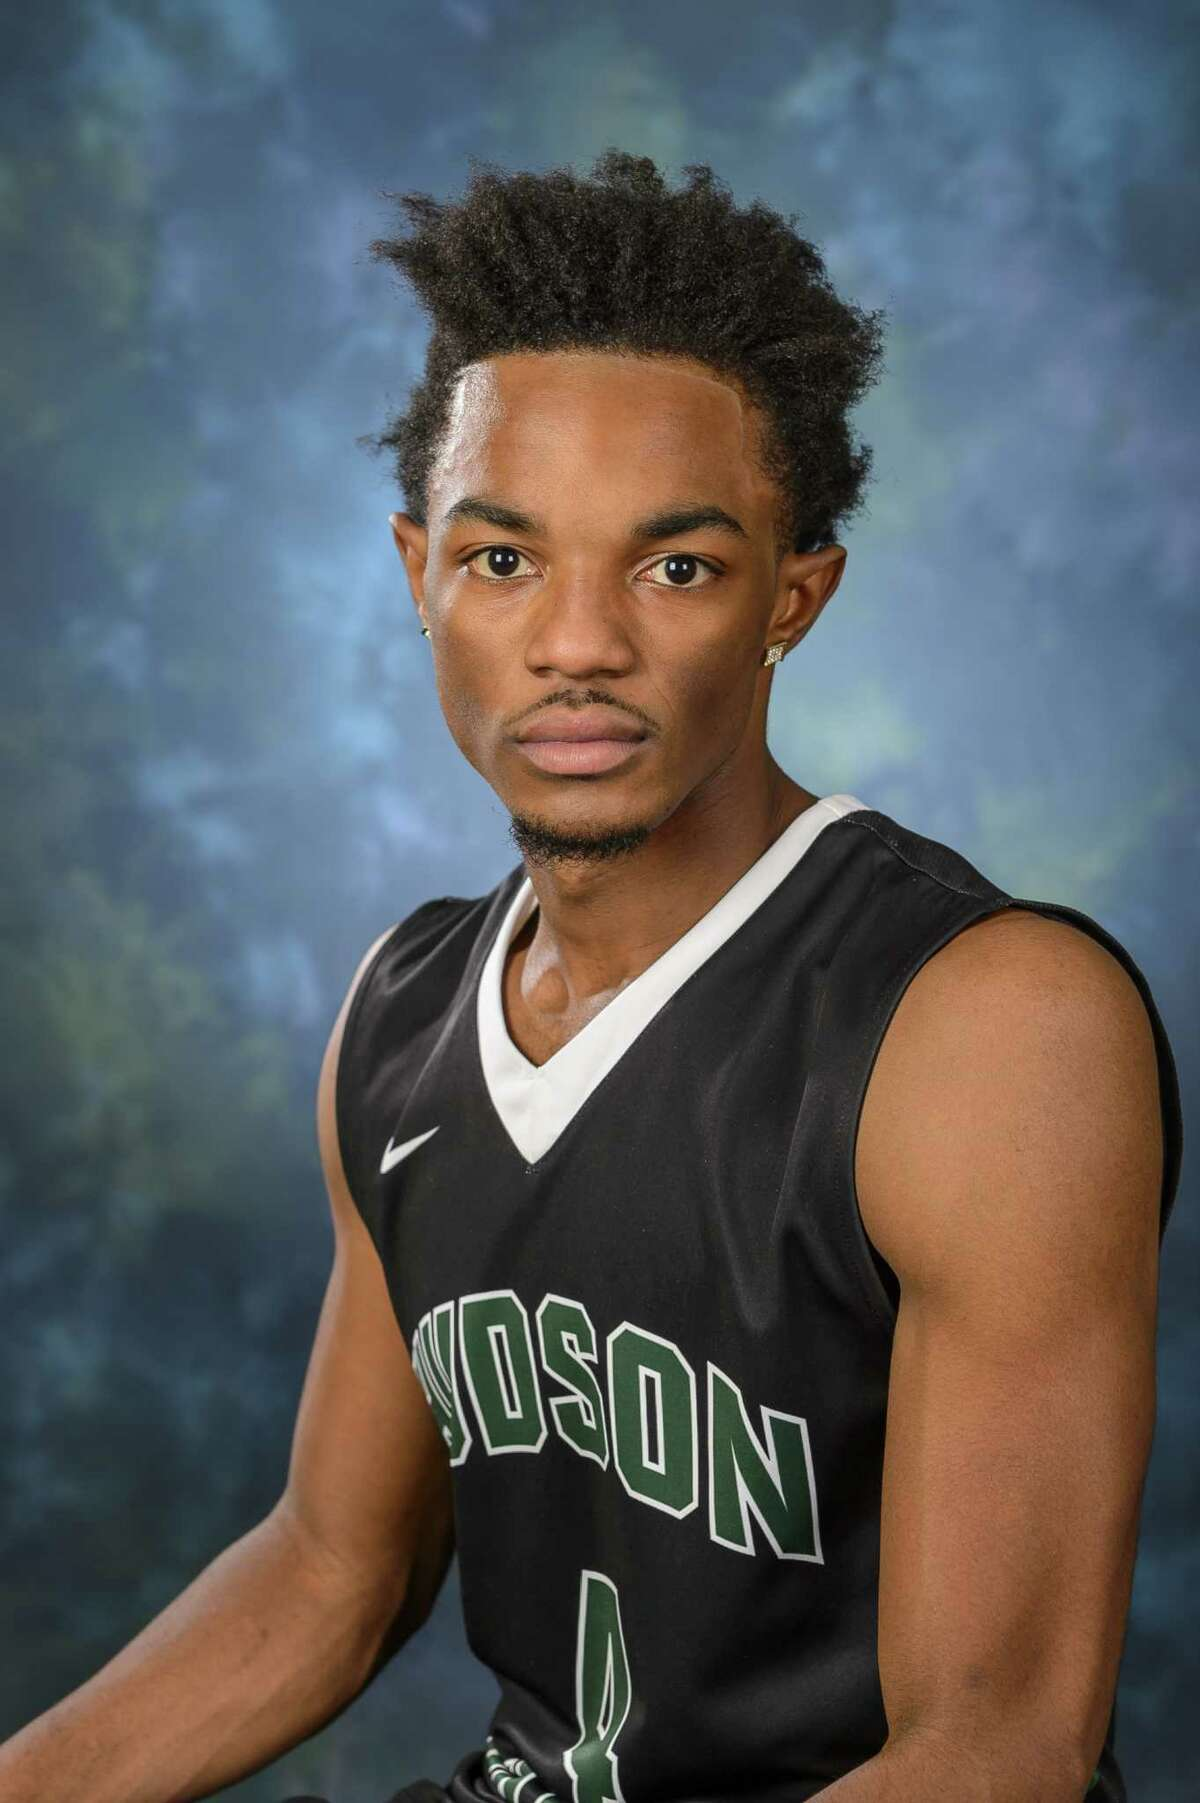 Hudson High School graduate Caleb Canty of the Hudson Valley men's basketball team. (Courtesy of HVCC)